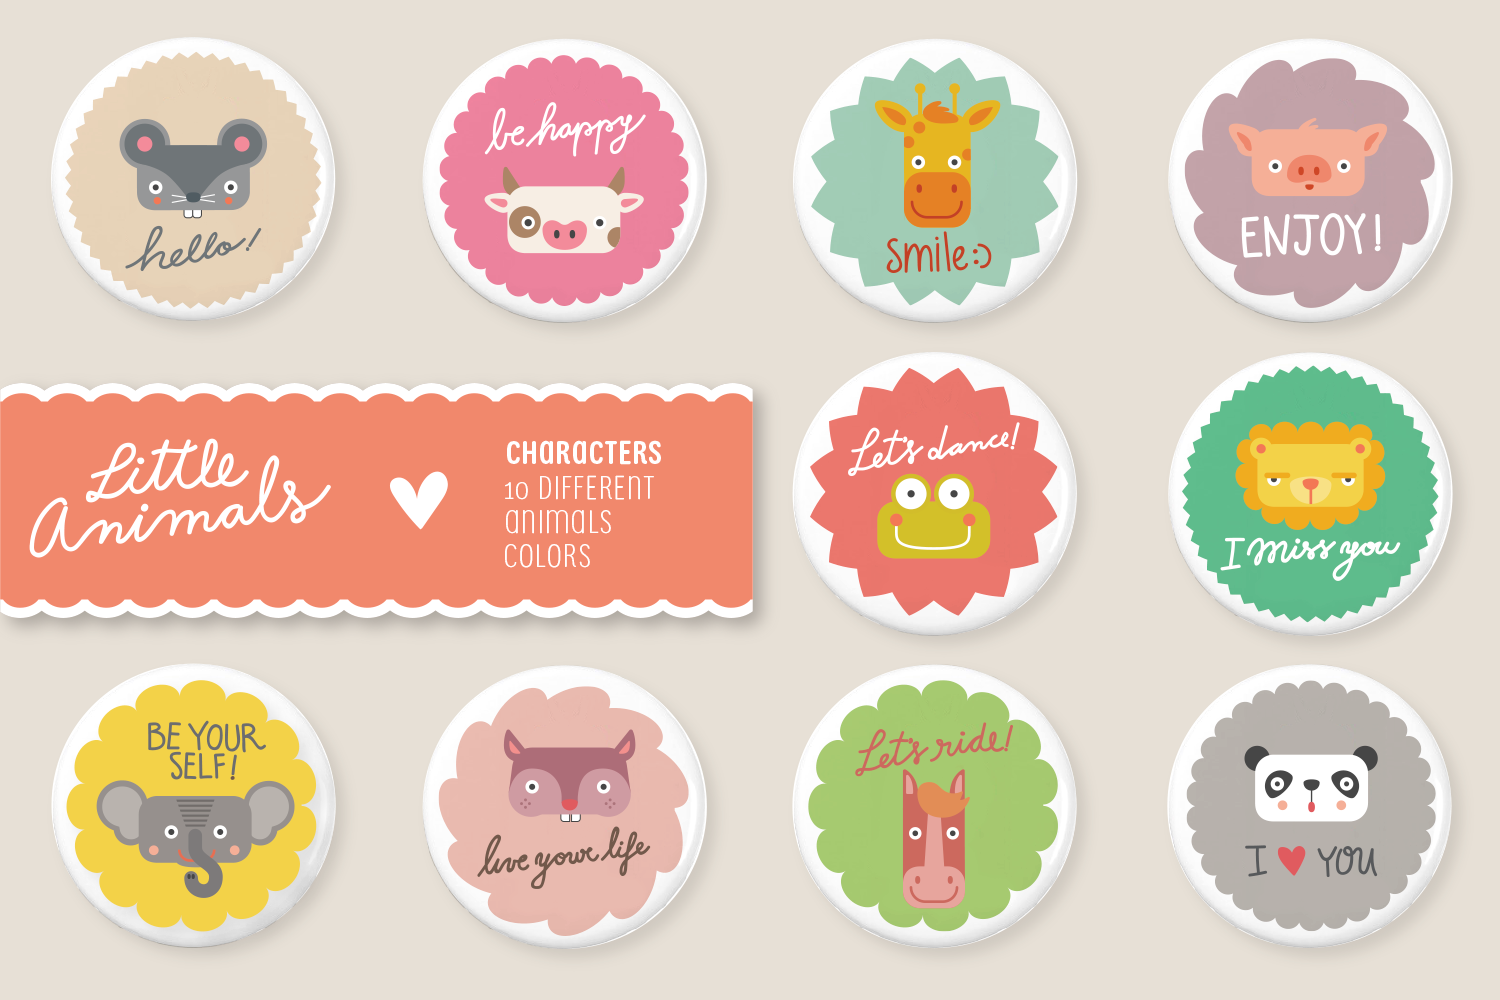 Little Animals Patterns + Characters example image 3